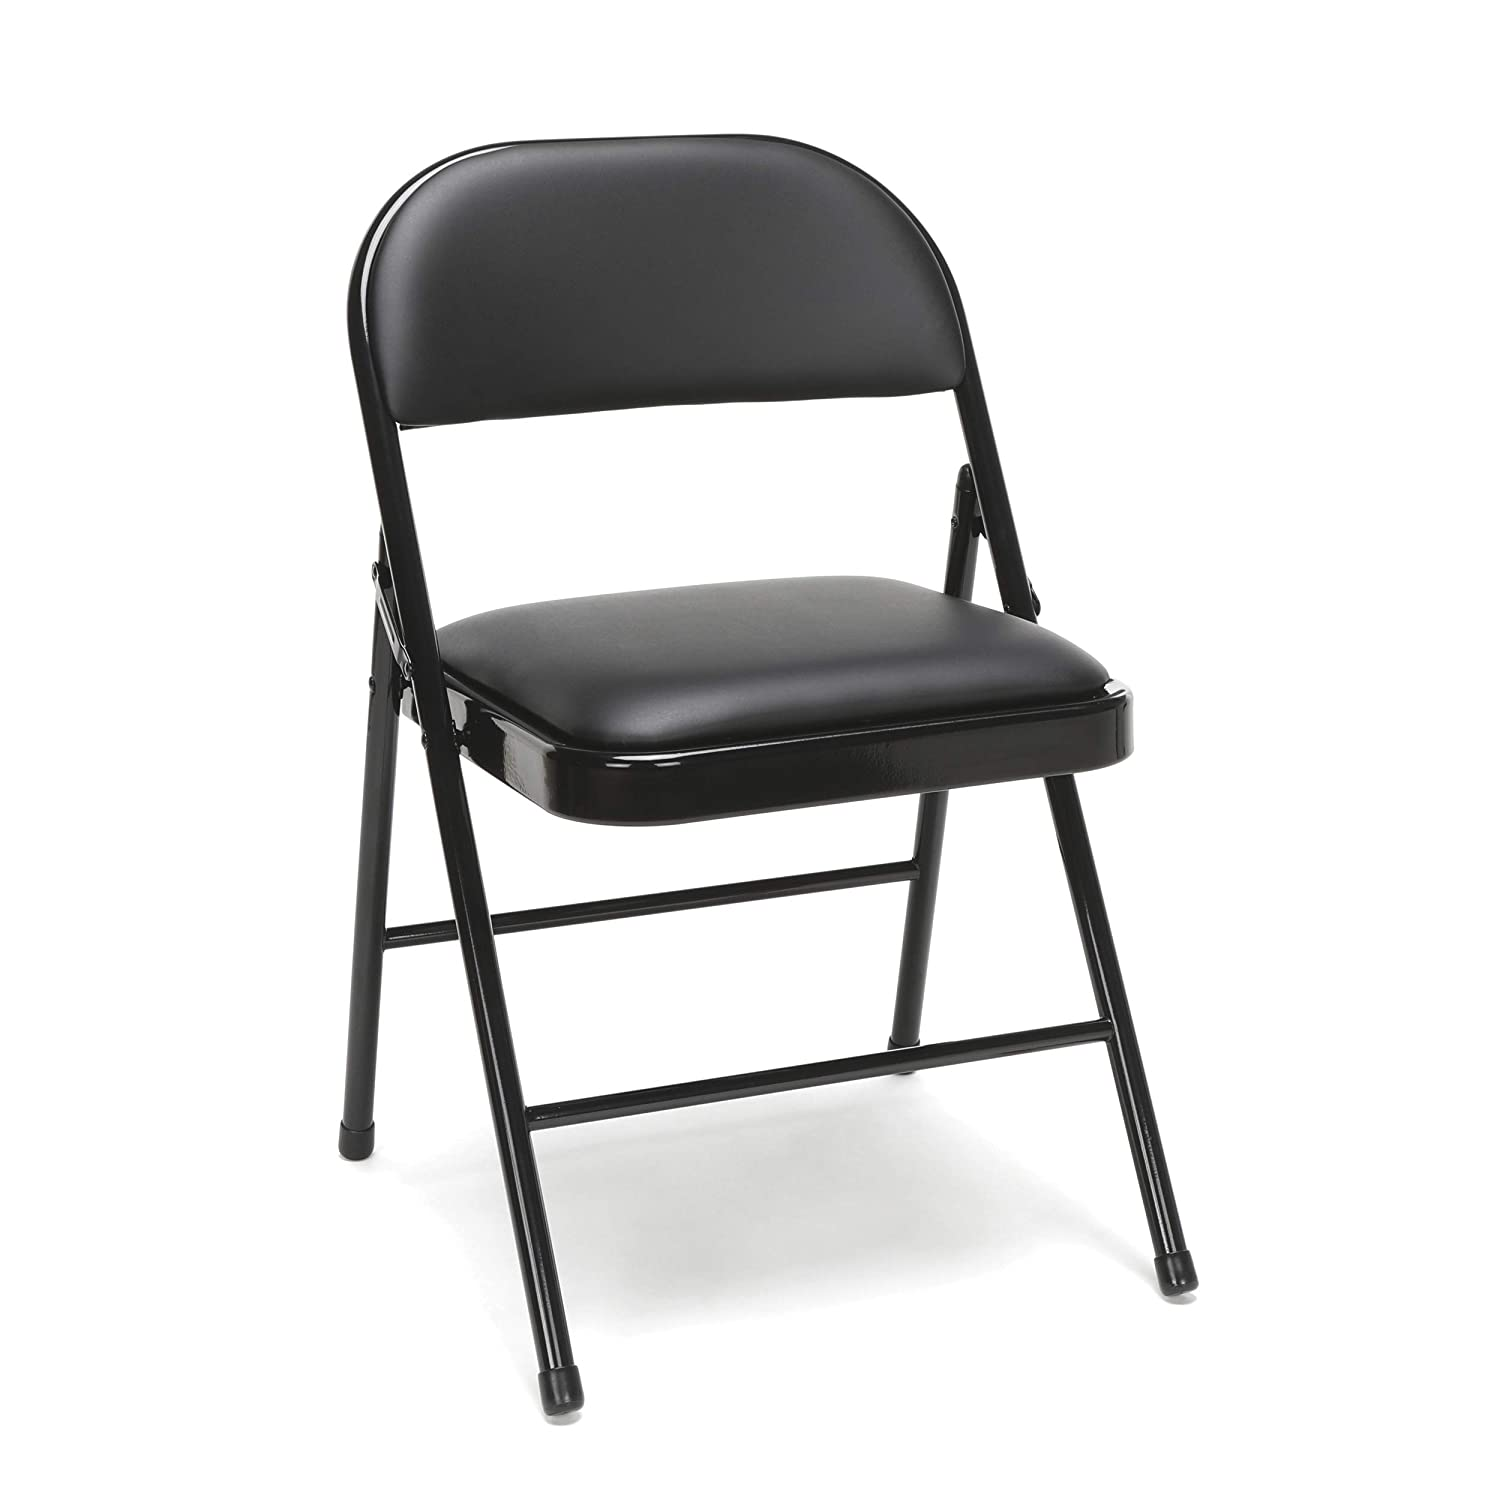 OFM Essentials Collection Multipurpose Padded Metal Folding Chair, Pack of 4, in Black ESS-8210-BLK